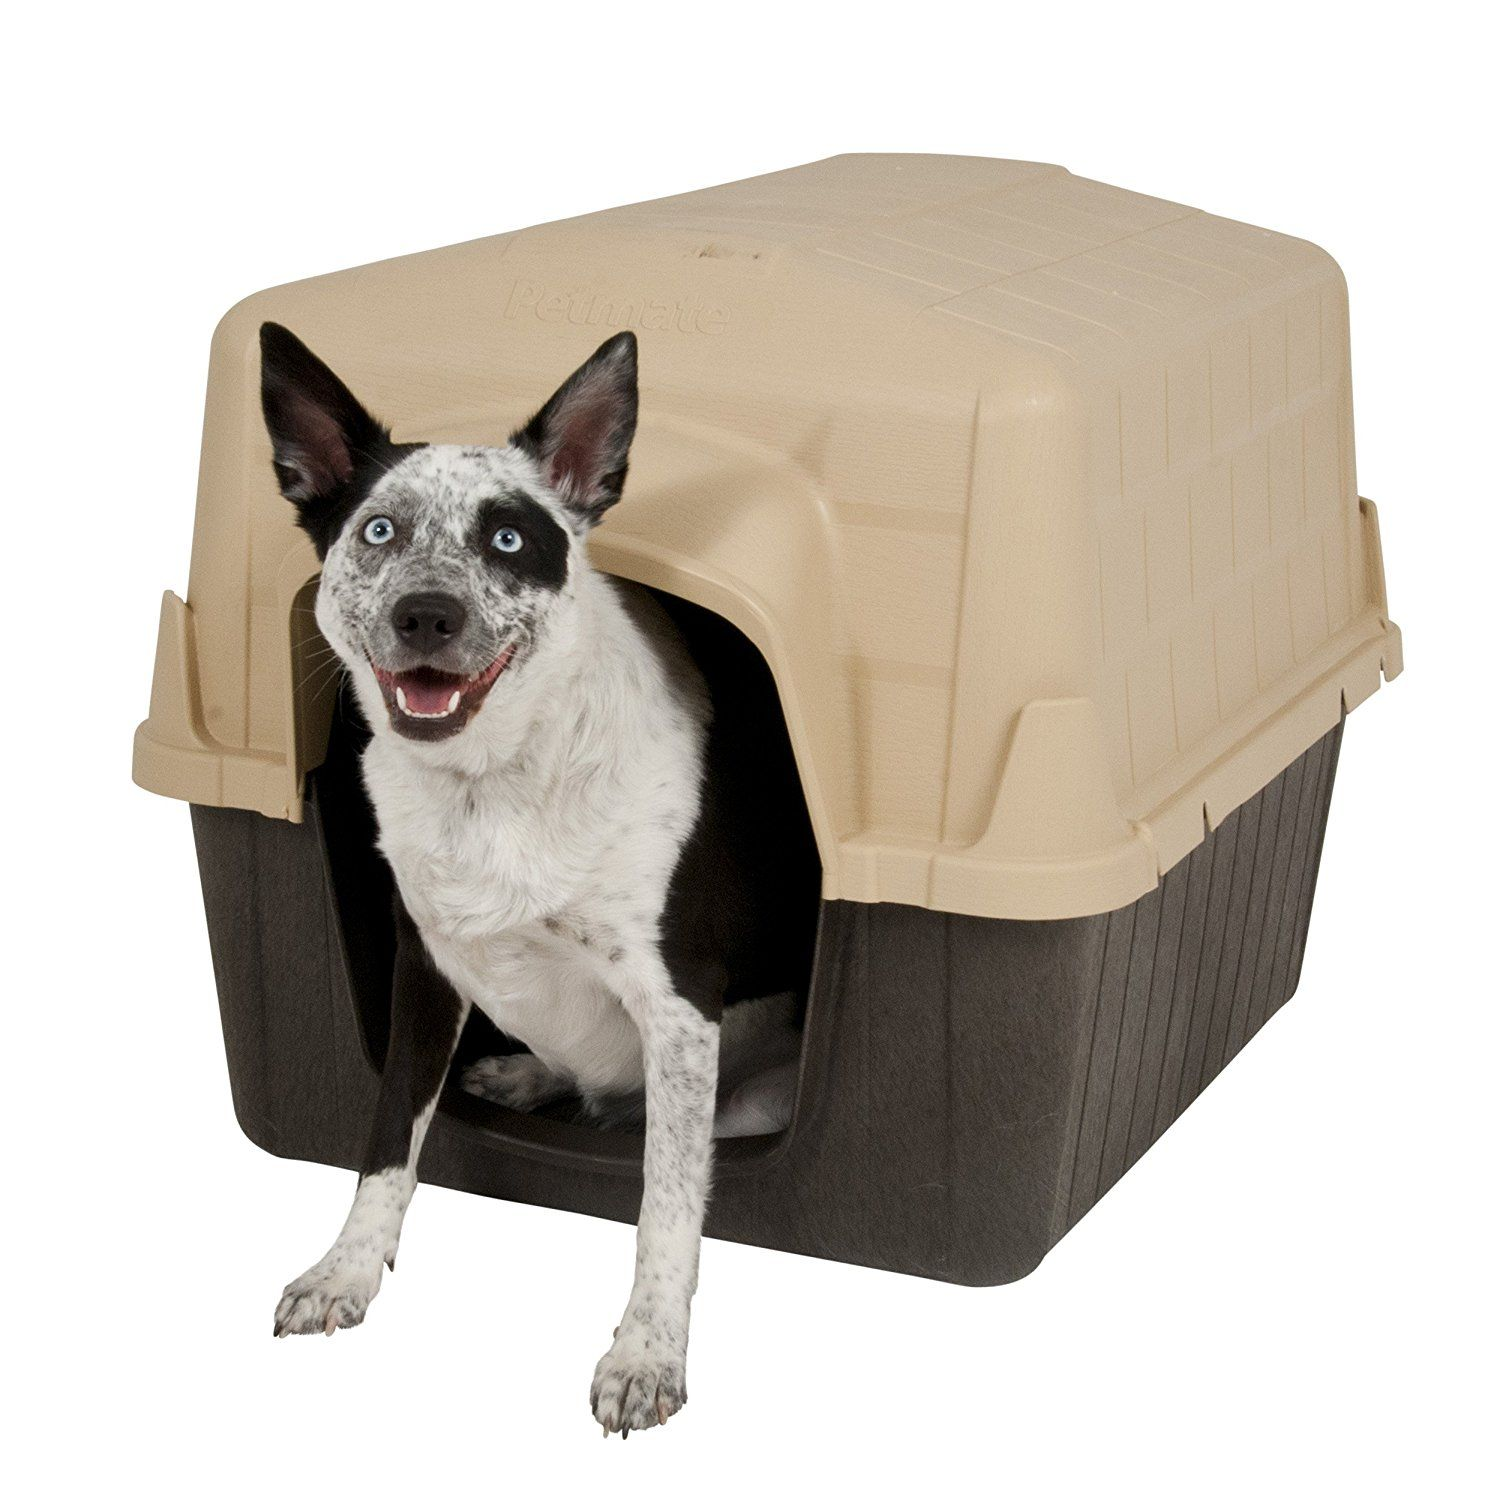 Petmate 25164 Barn III Dog House * Tried it! Love it